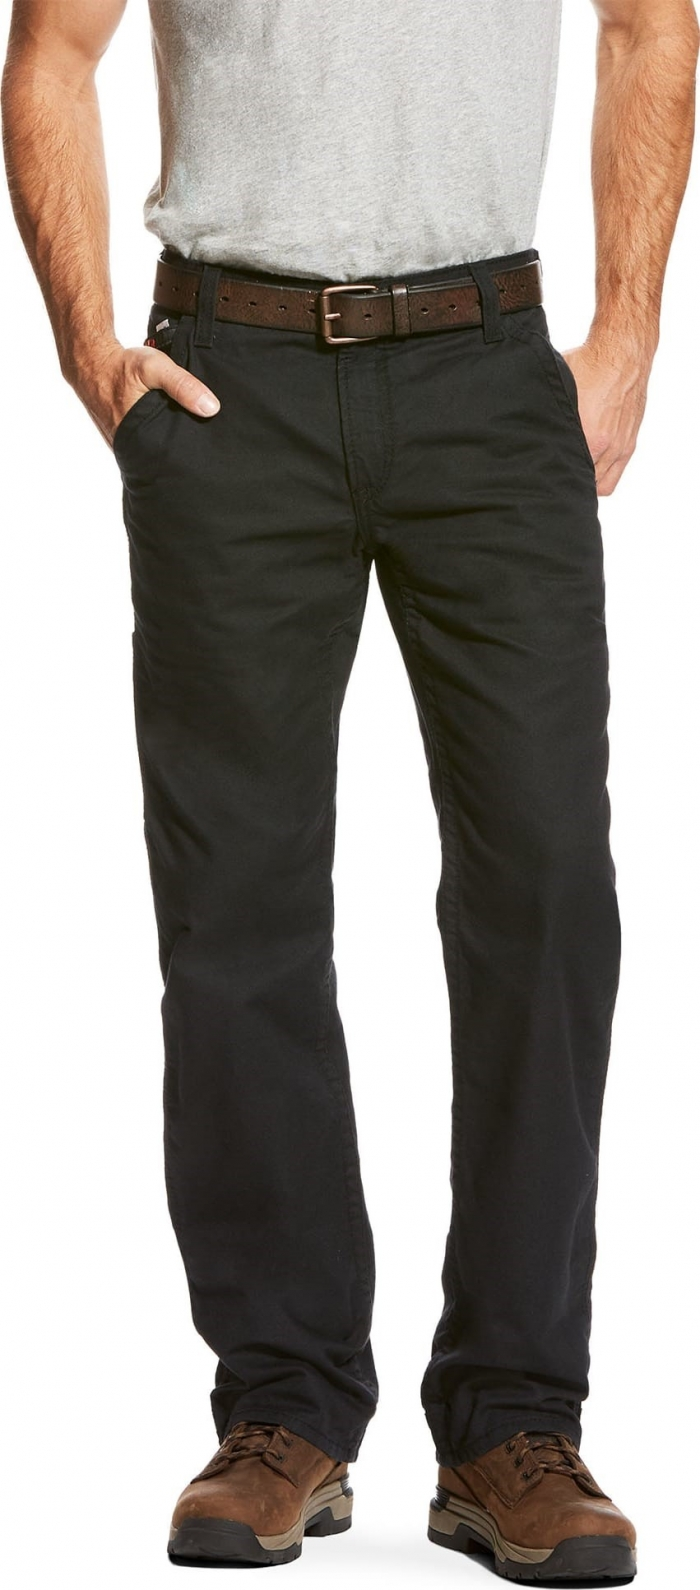 580a26a9acd4 Ariat FR M4 Relaxed Fit Boot Cut Workhorse - Black